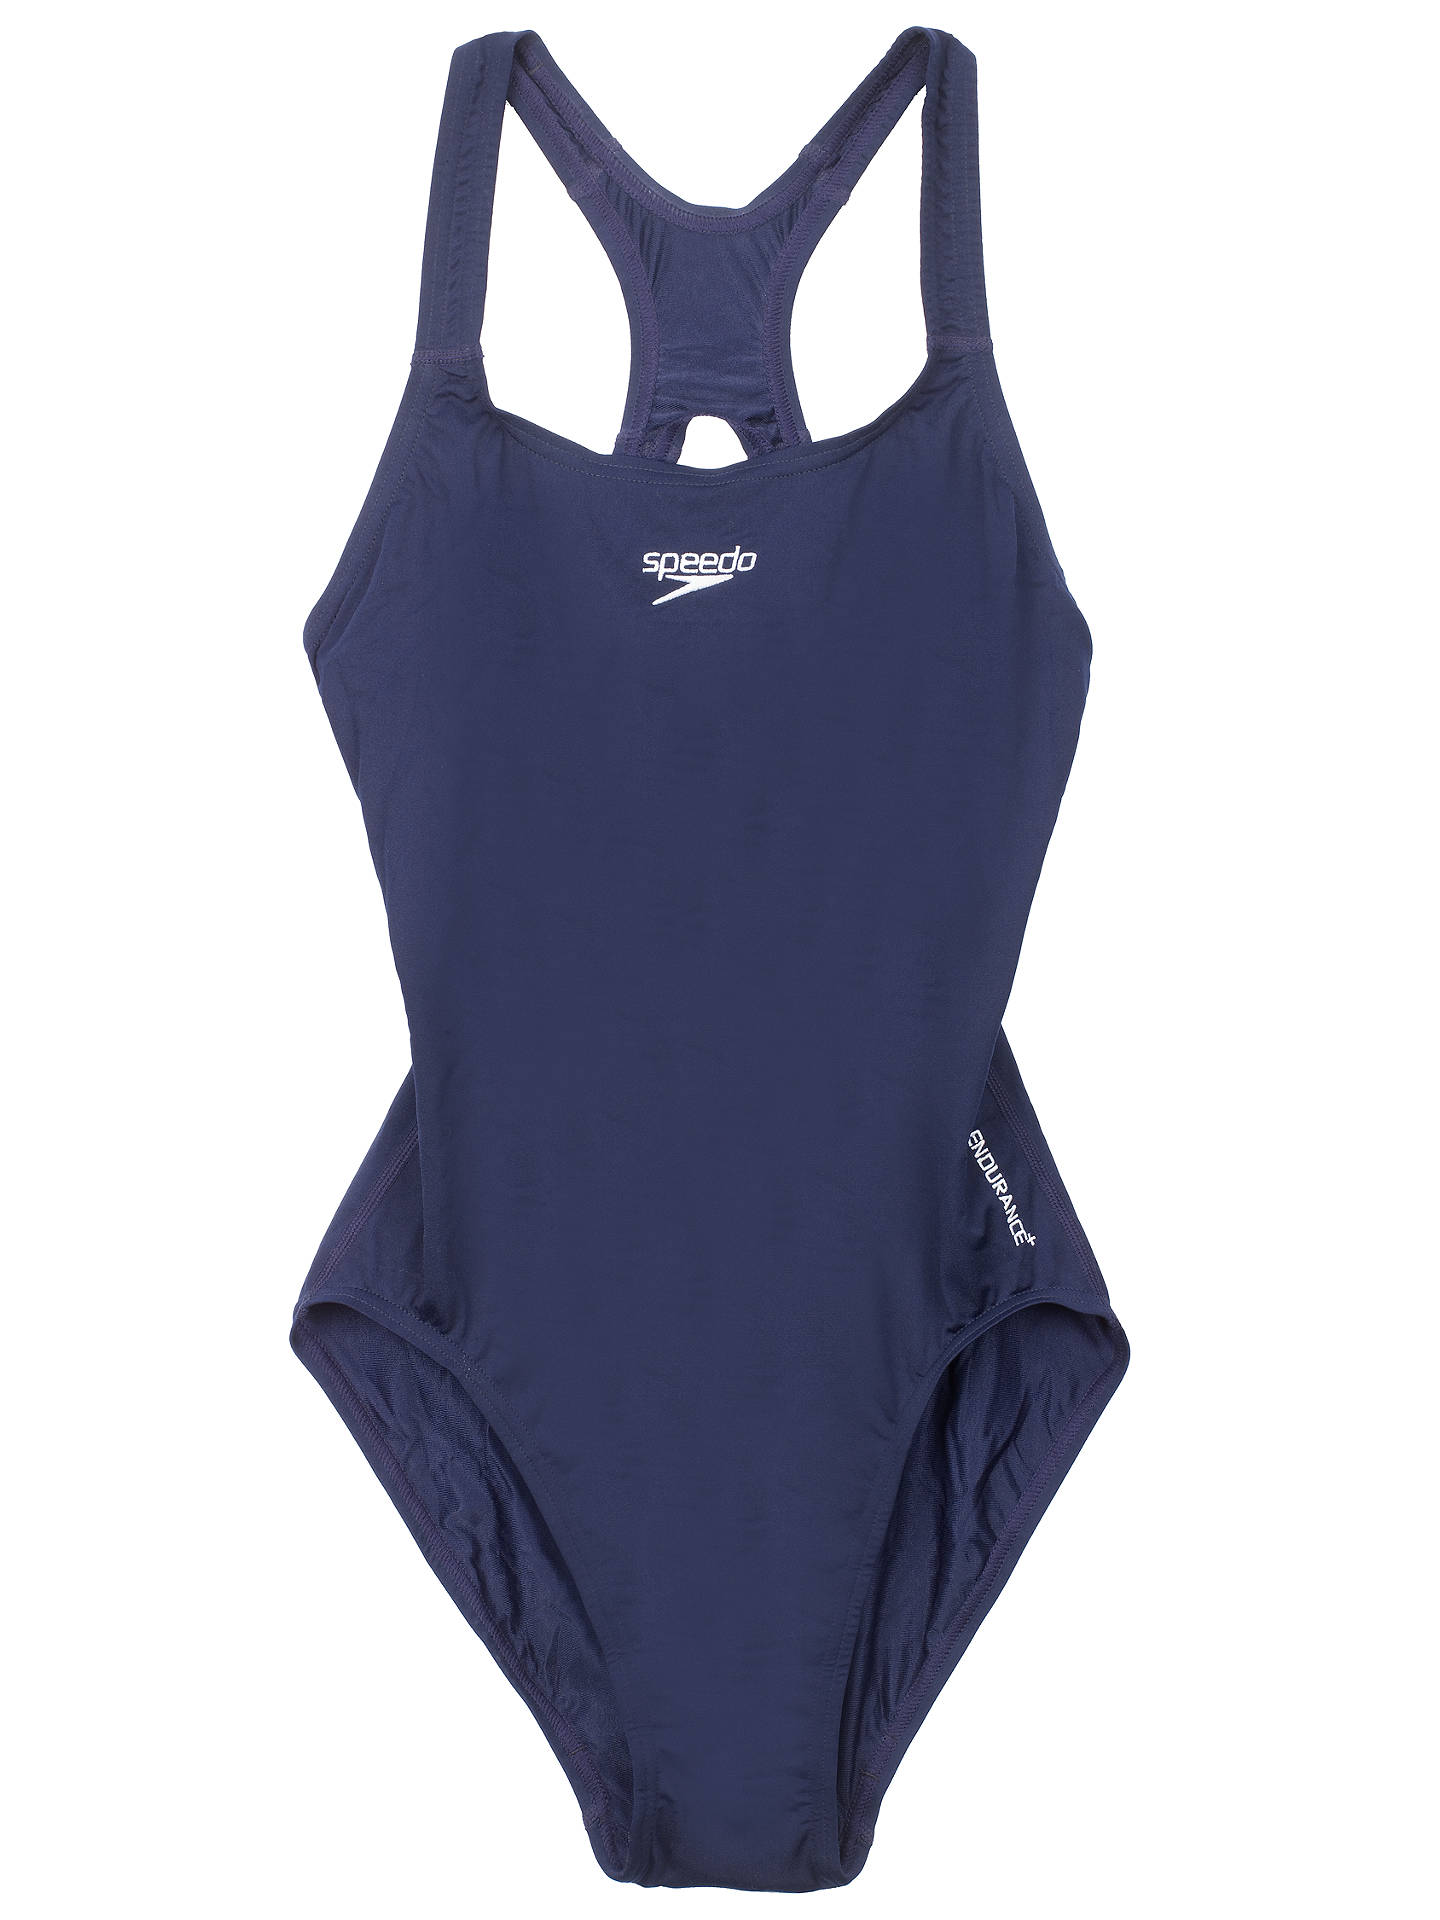 23ecb062ab Buy Speedo Girls' Medalist Swimsuit, Navy, Chest 24